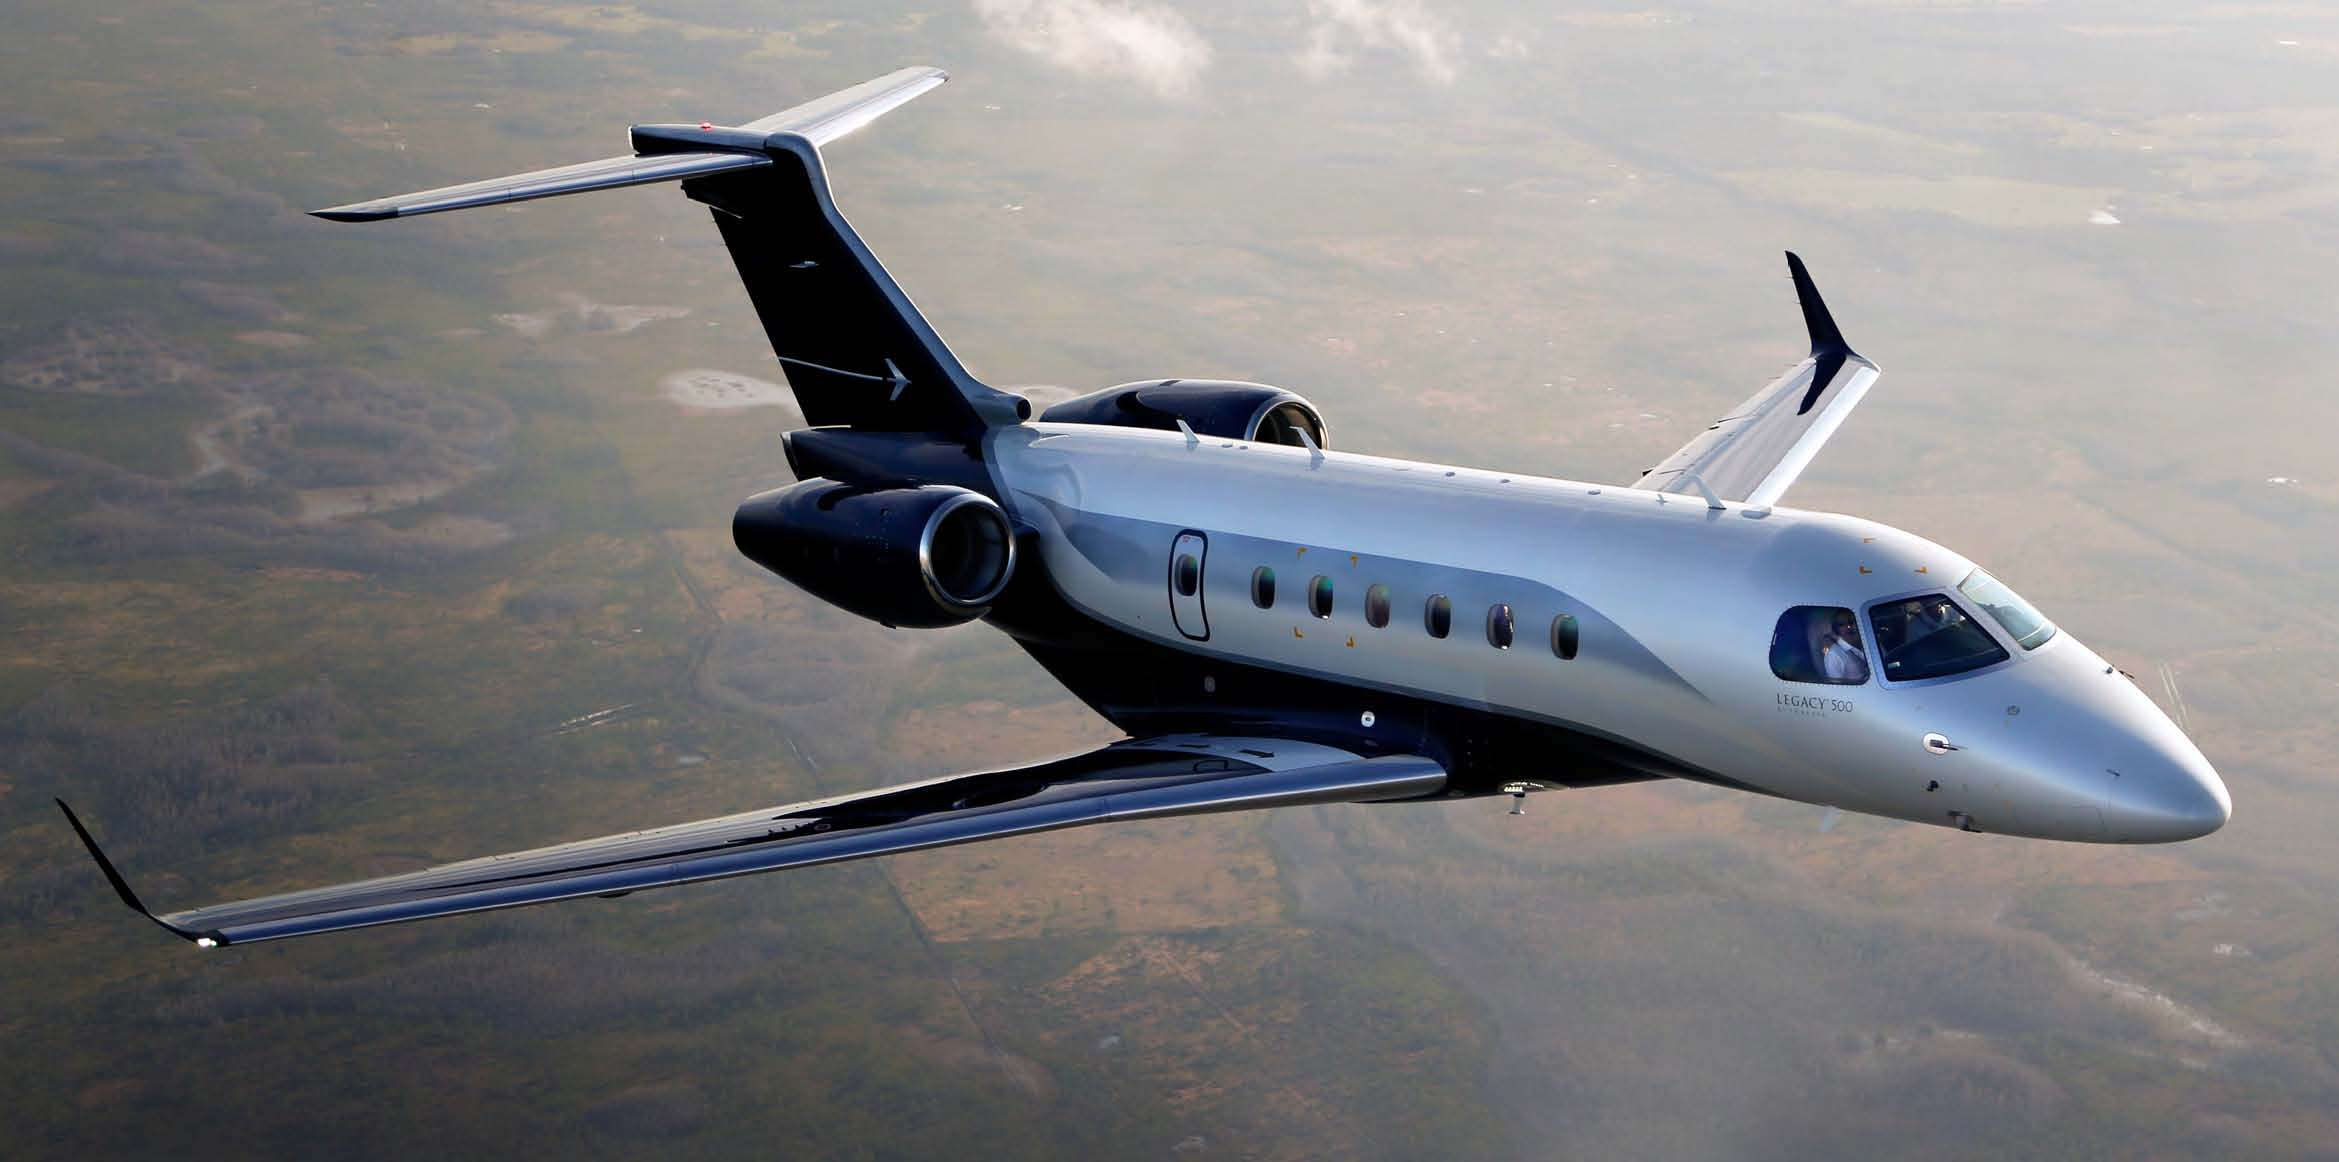 Aircraft Listing - Legacy 500 listed for sale